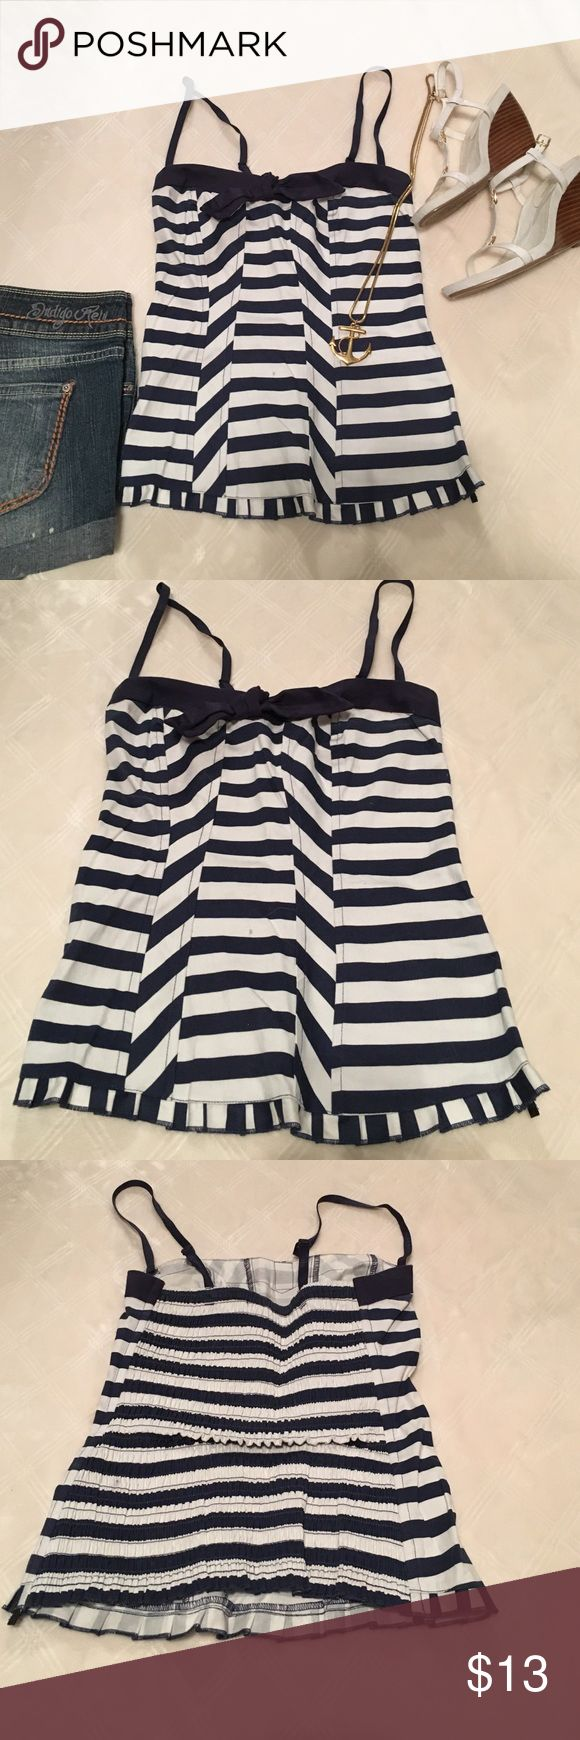 Blue and white nautical top Blue and white nautical top. Straps are adjustable and removable. Bow in the center. Has boning up the sides. Charlotte Russe size small. 98% cotton 2% spandex. Charlotte Russe Tops